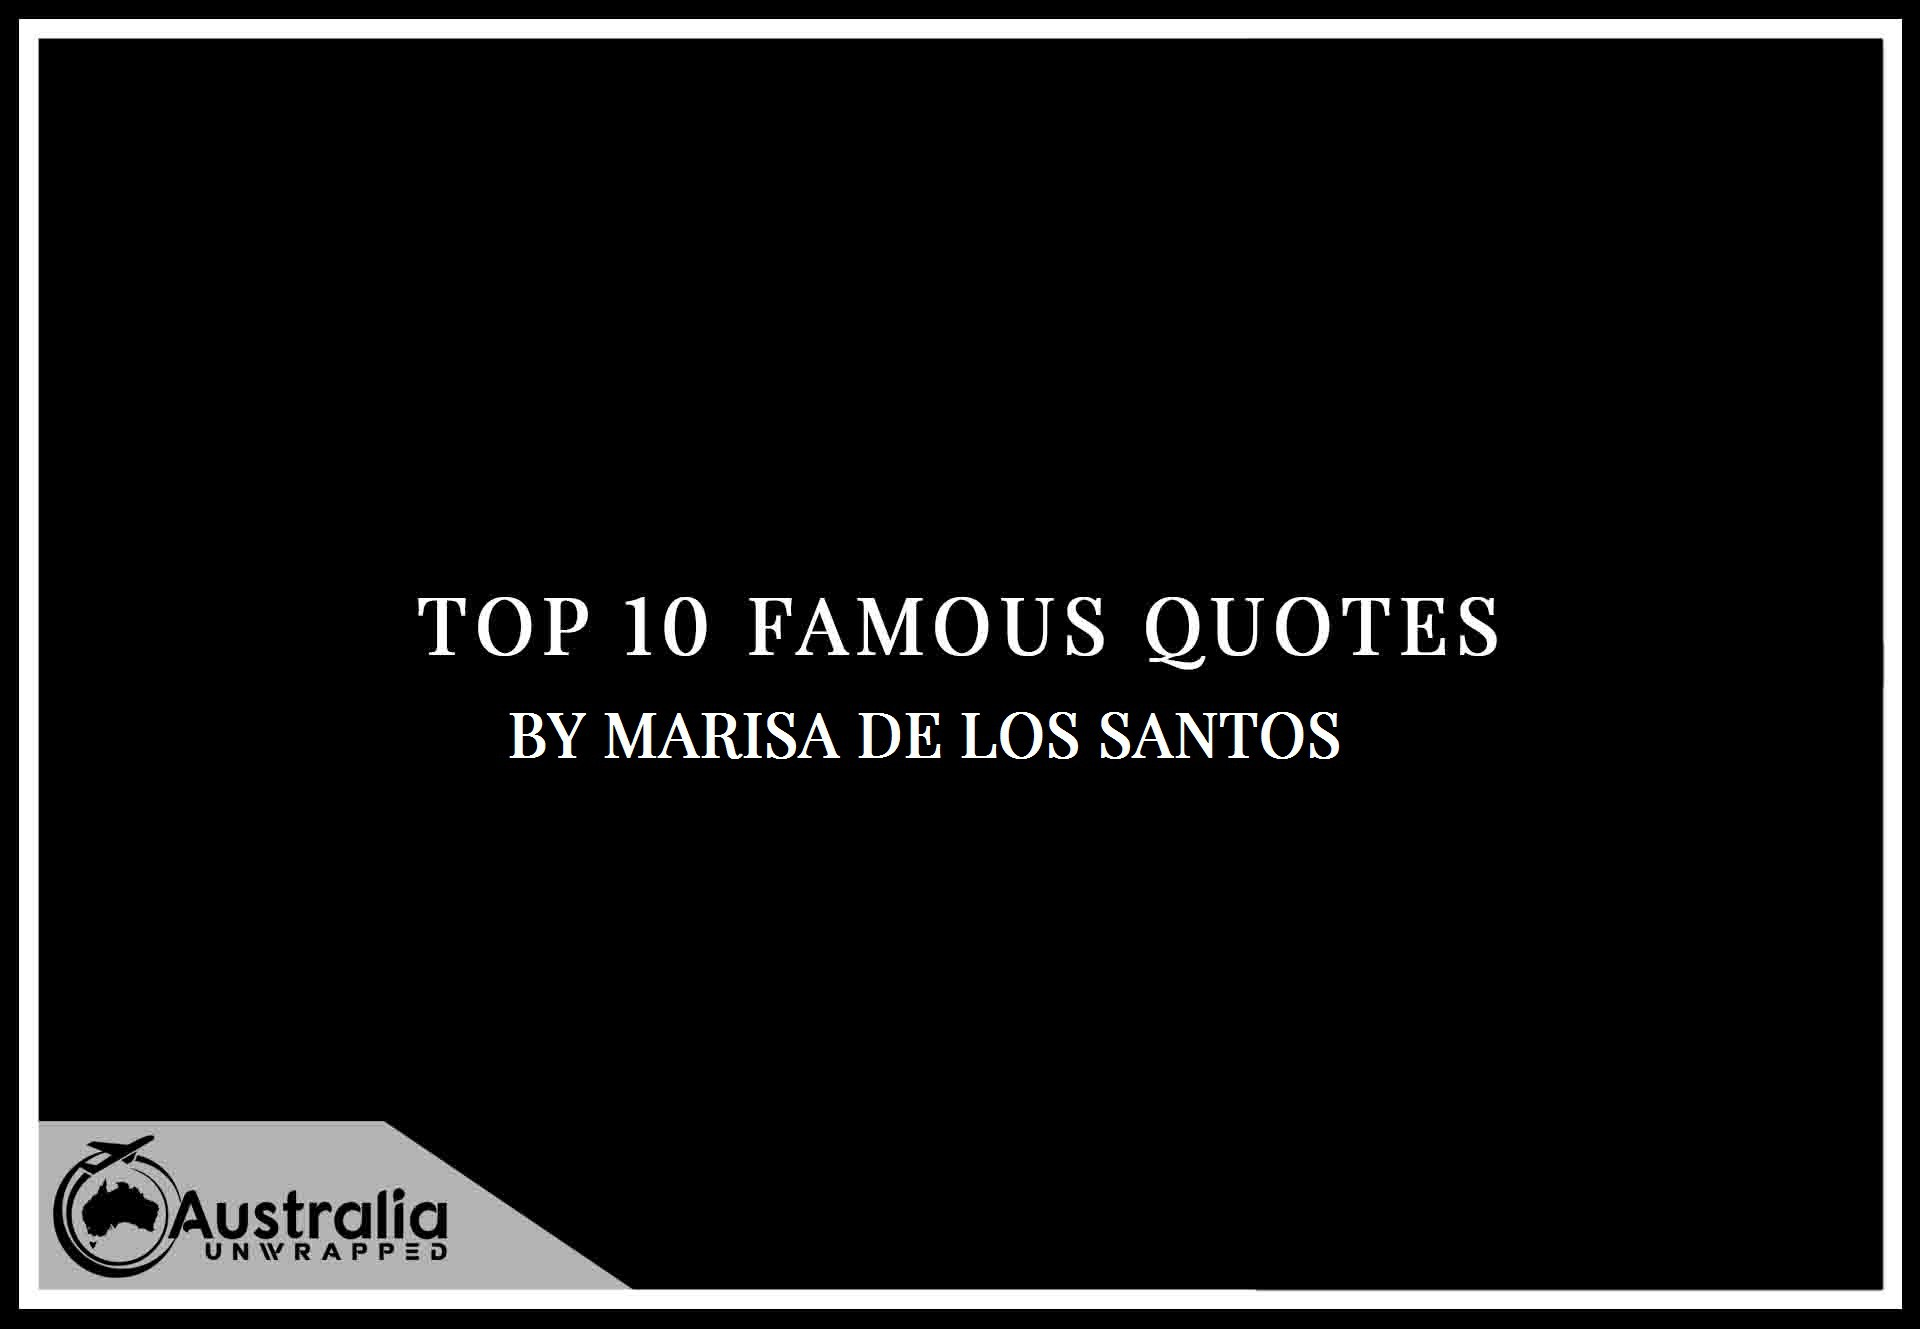 Marisa de los Santos's Top 10 Popular and Famous Quotes